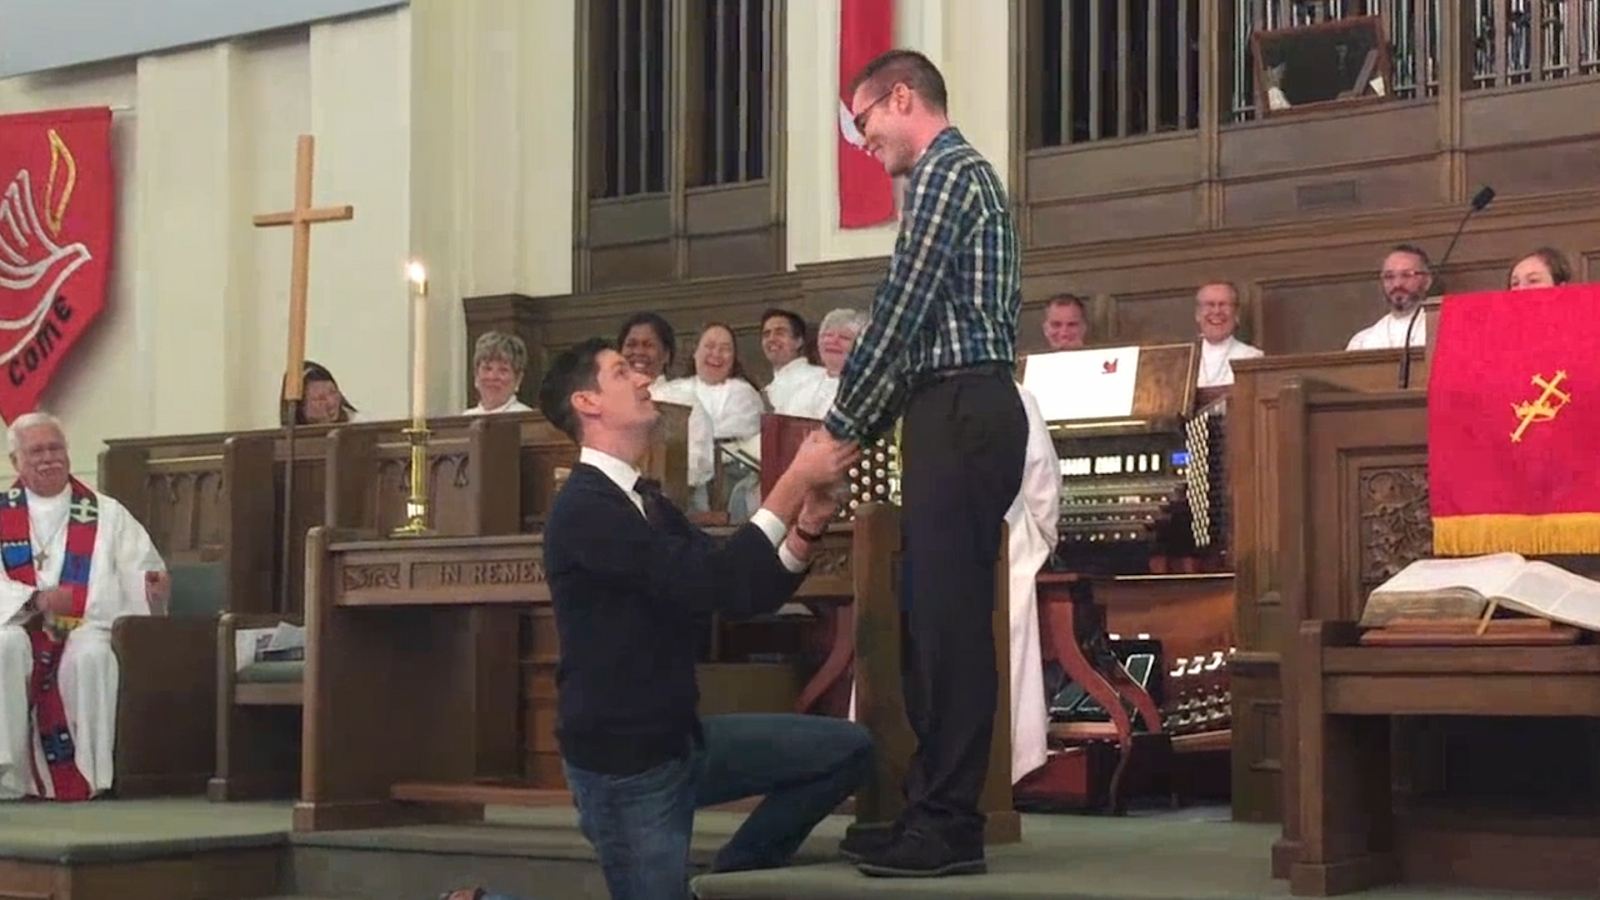 Texas Gay Marriage Proposal At Church Receives Standing